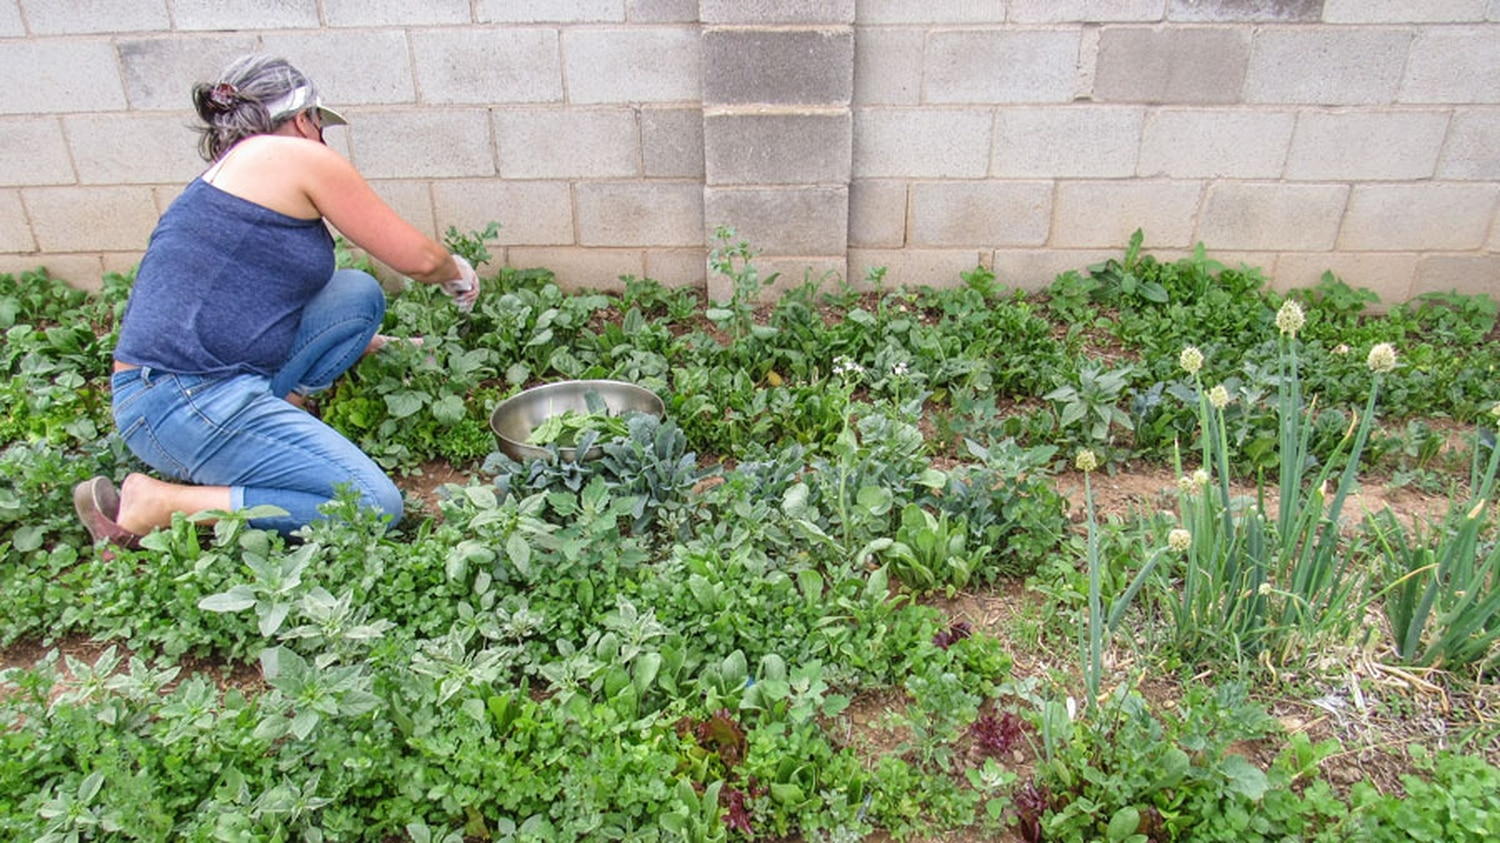 Michelle Wurth, Ras Rody's partner, harvests greens from their organic garden.